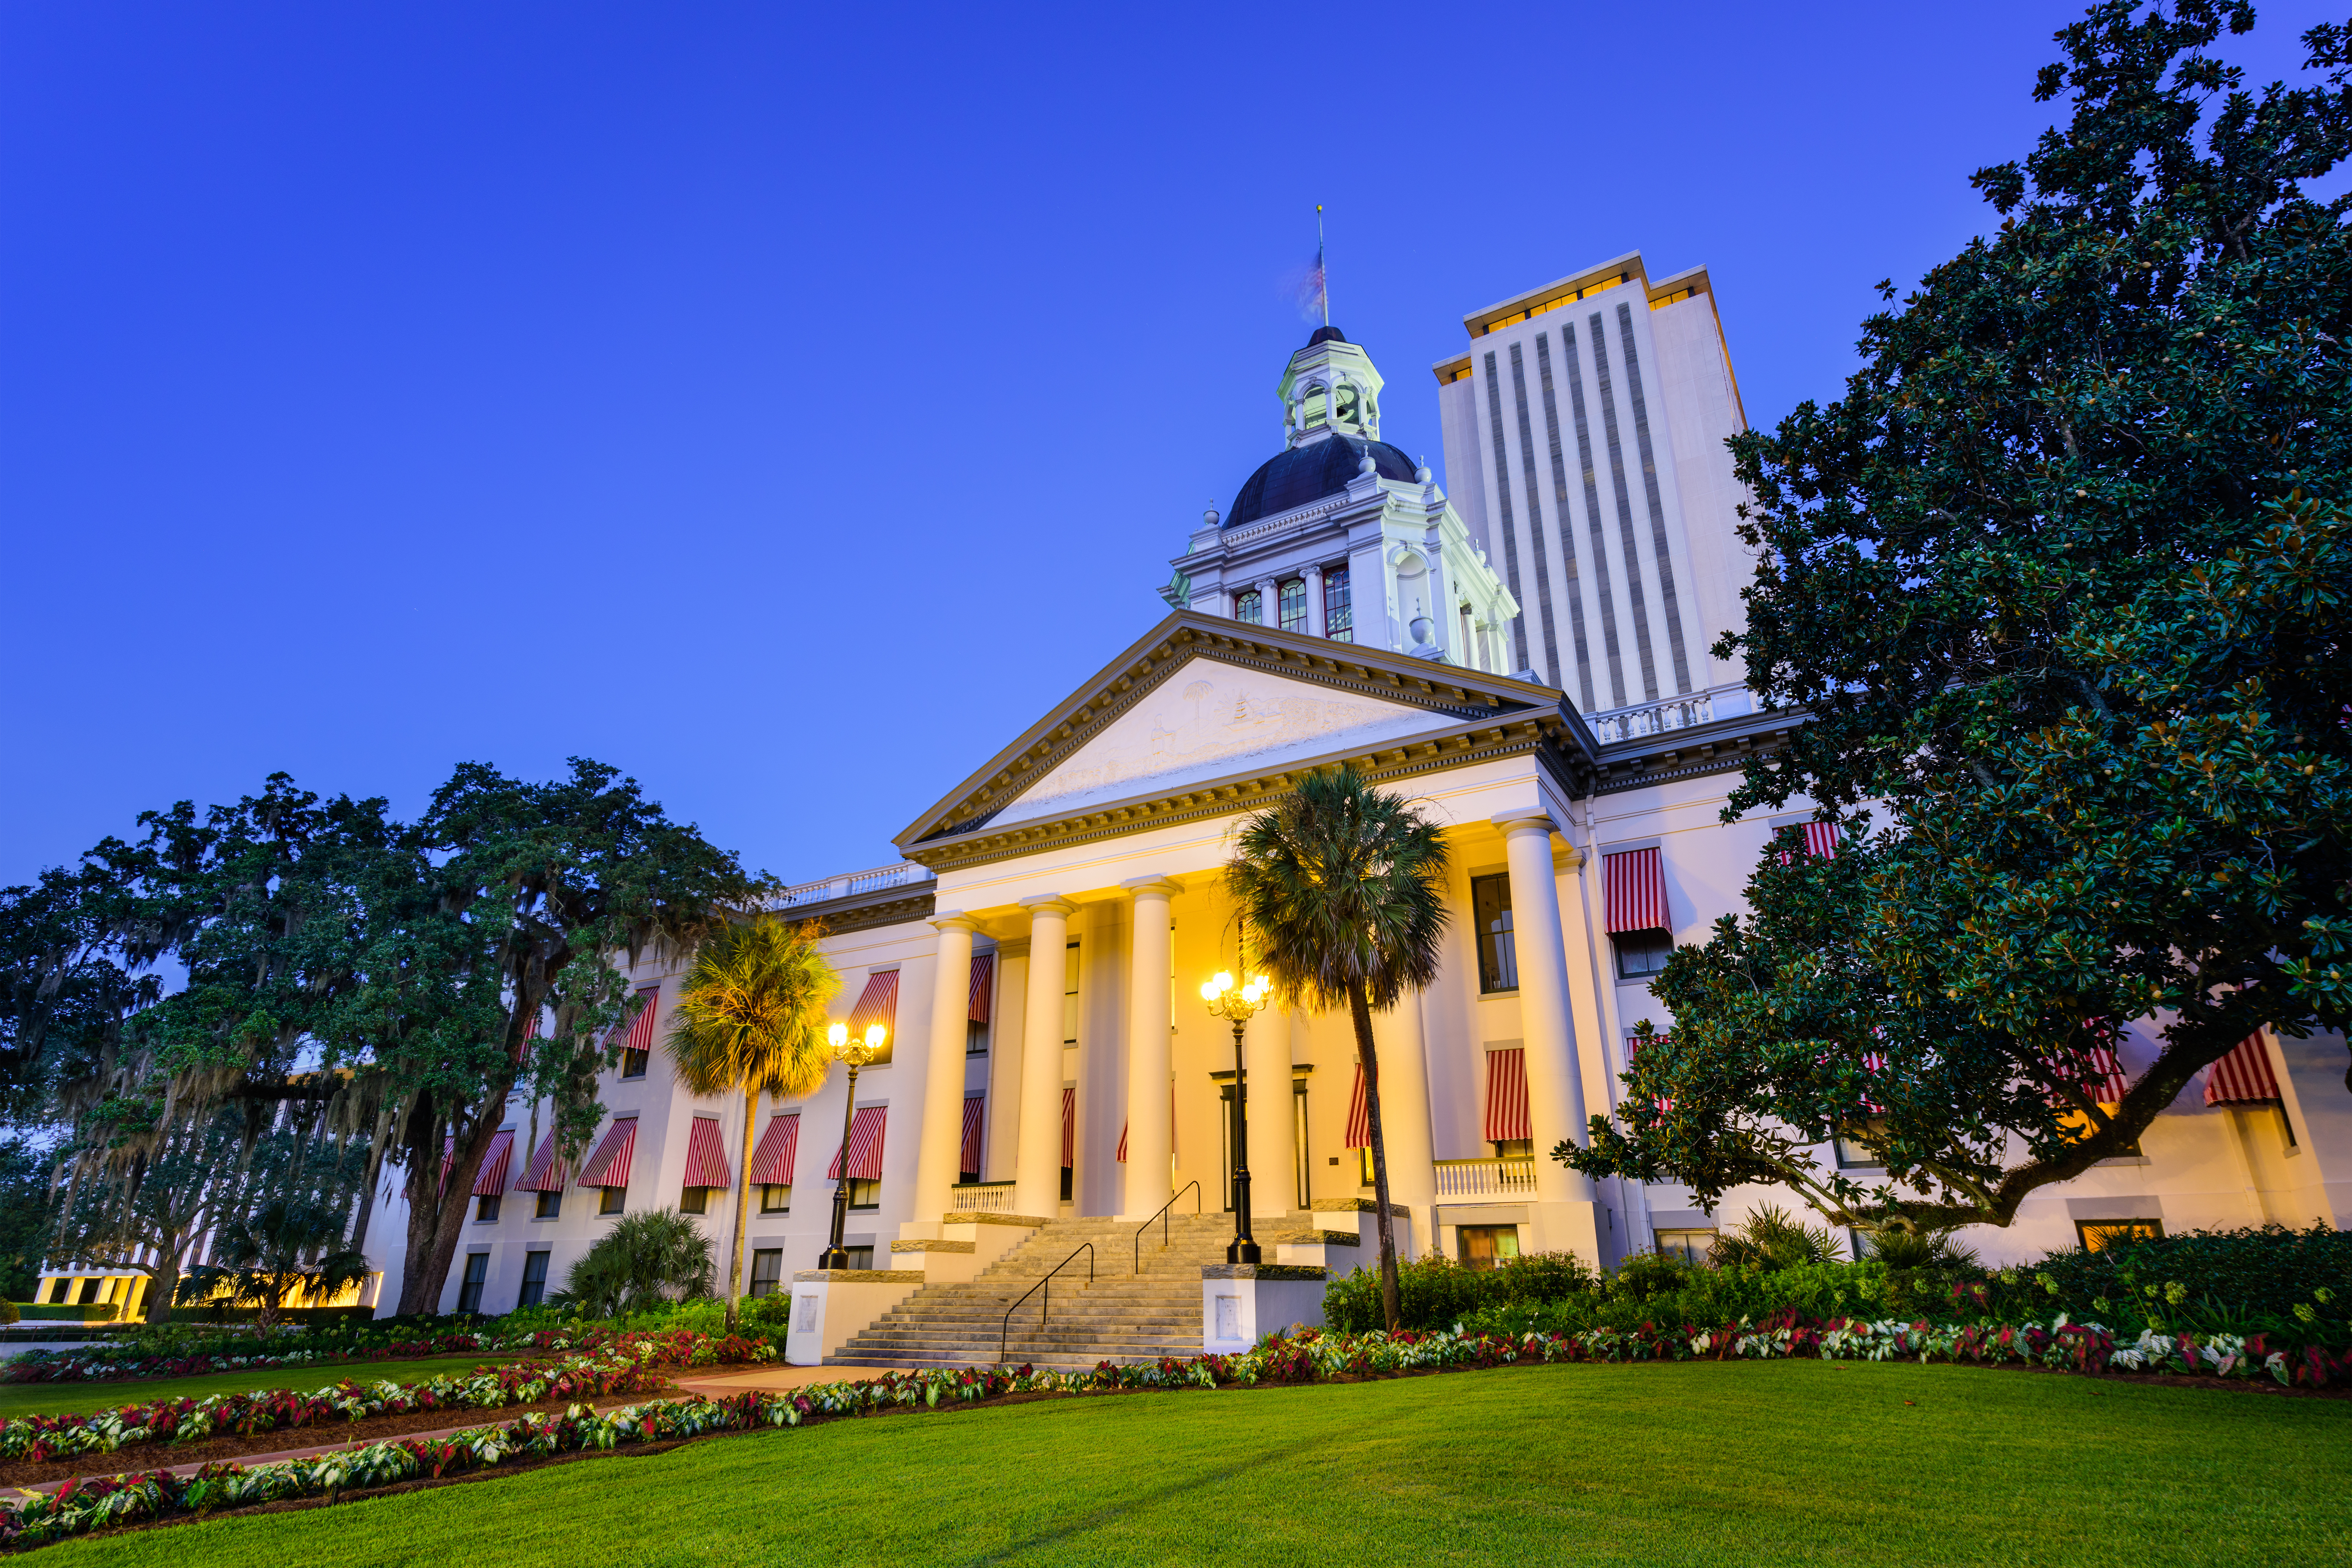 Florida's 50+ Residents Score Big Wins & Losses in 2019 Legislative Session